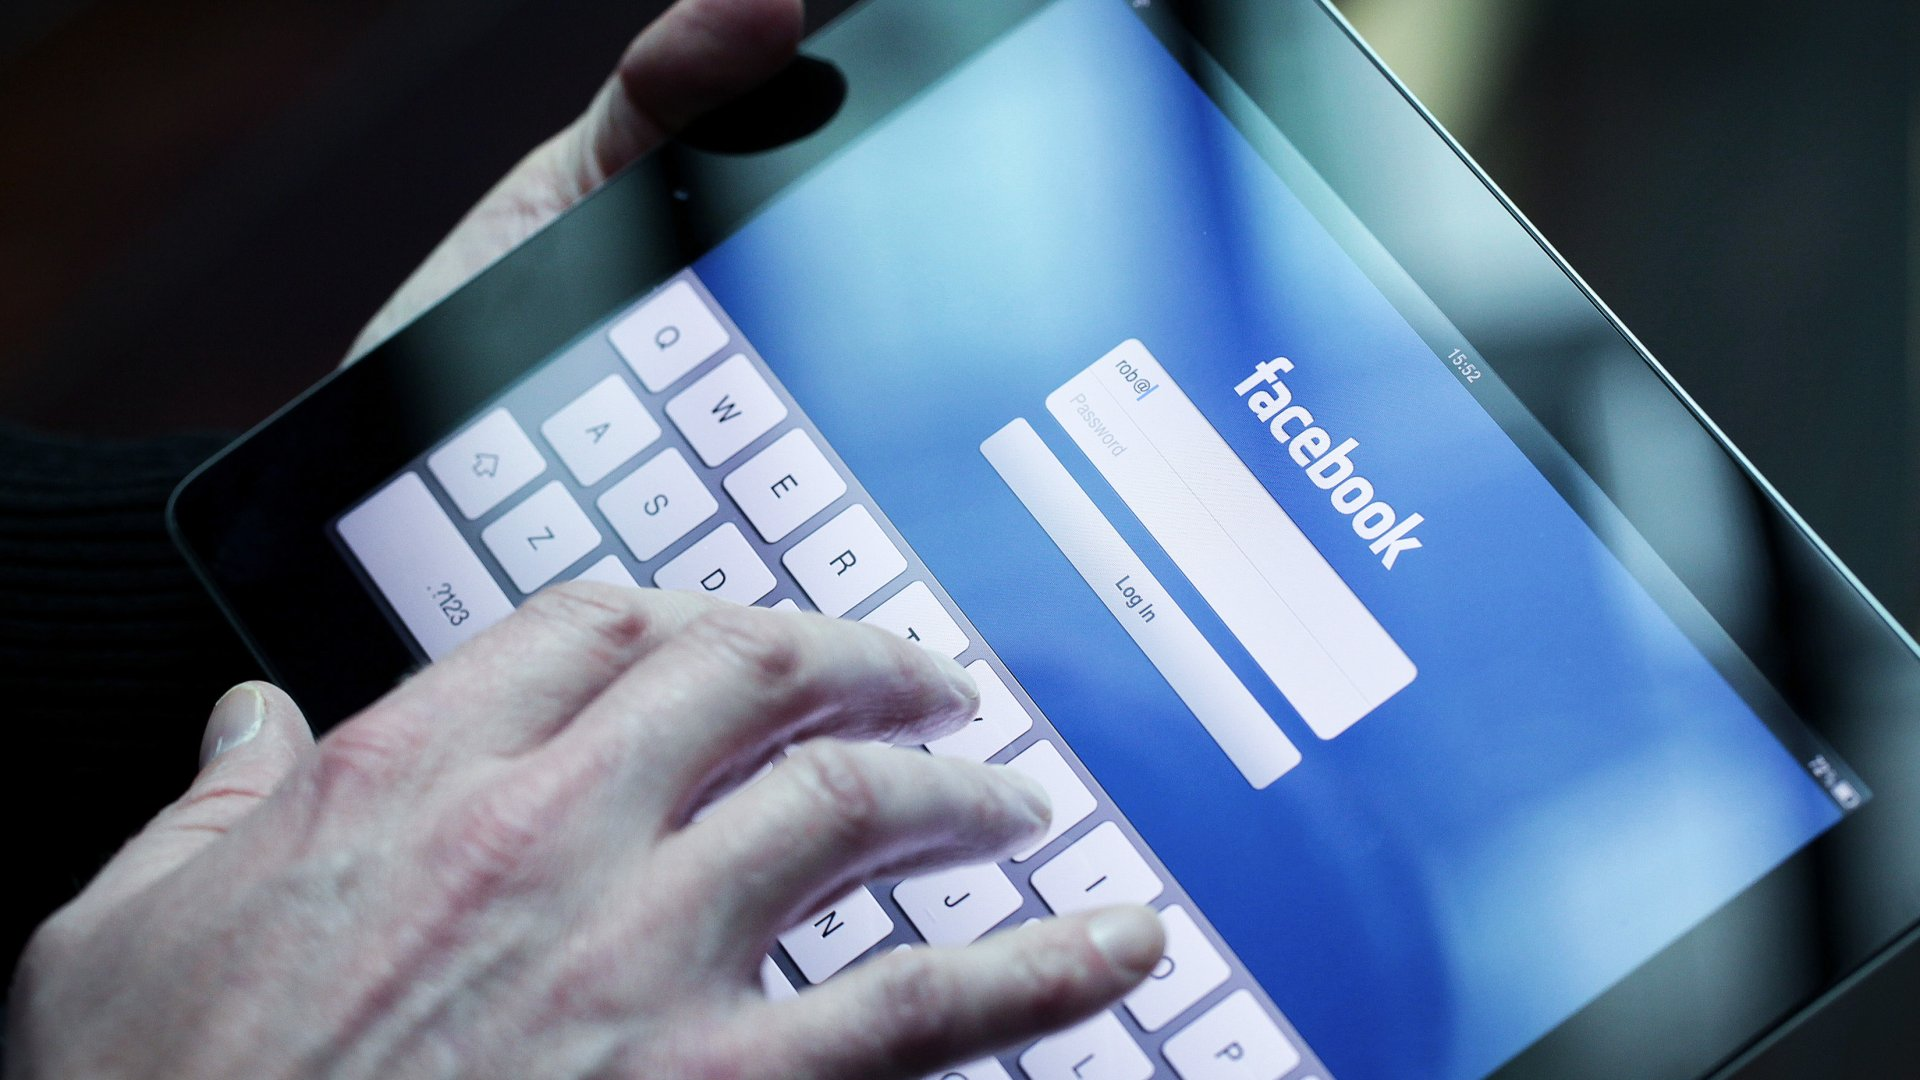 7 Incredibly Useful Things You Didn't Know Facebook Could Do for You